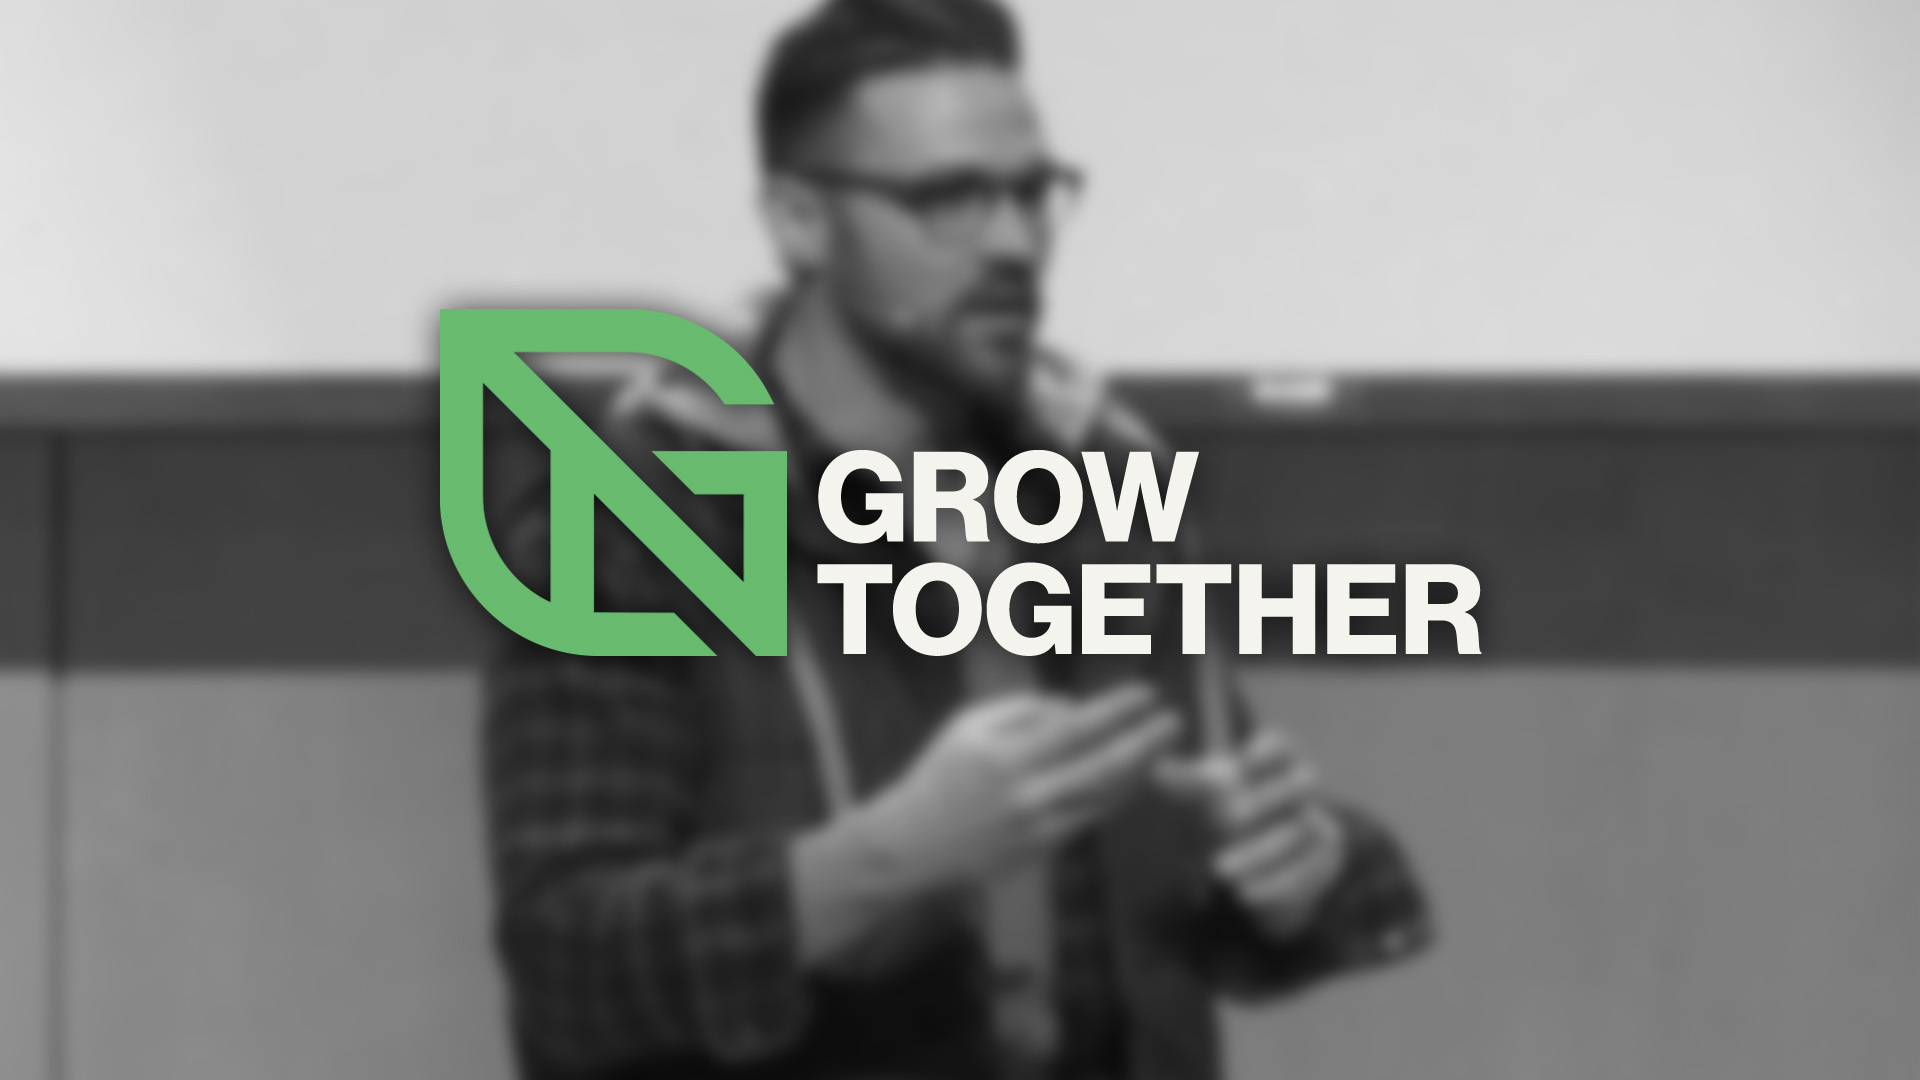 GrowTogether.jpg